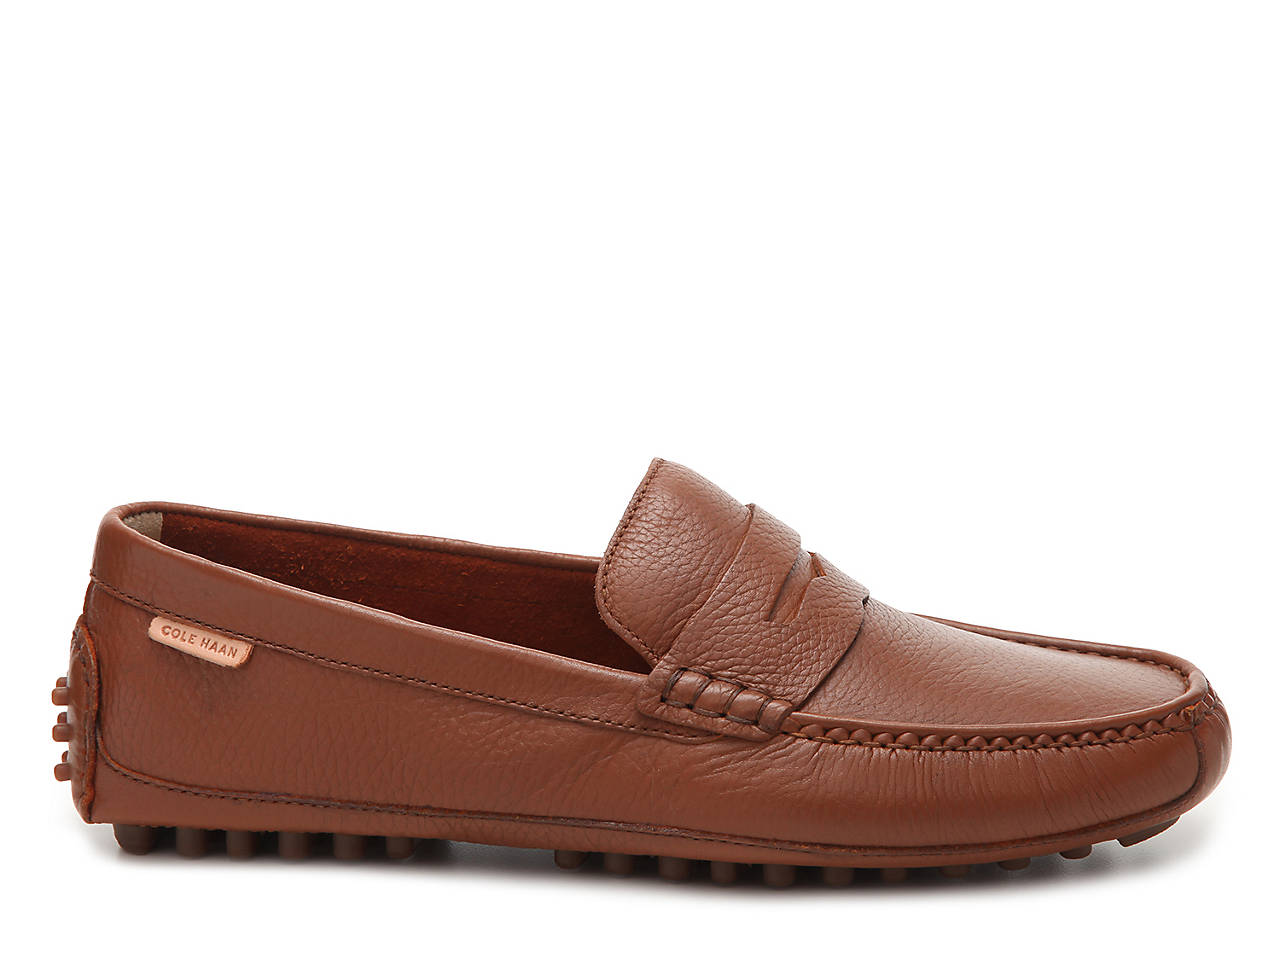 eb2f5f36cf4 Cole Haan Coburn Penny Loafer Men s Shoes